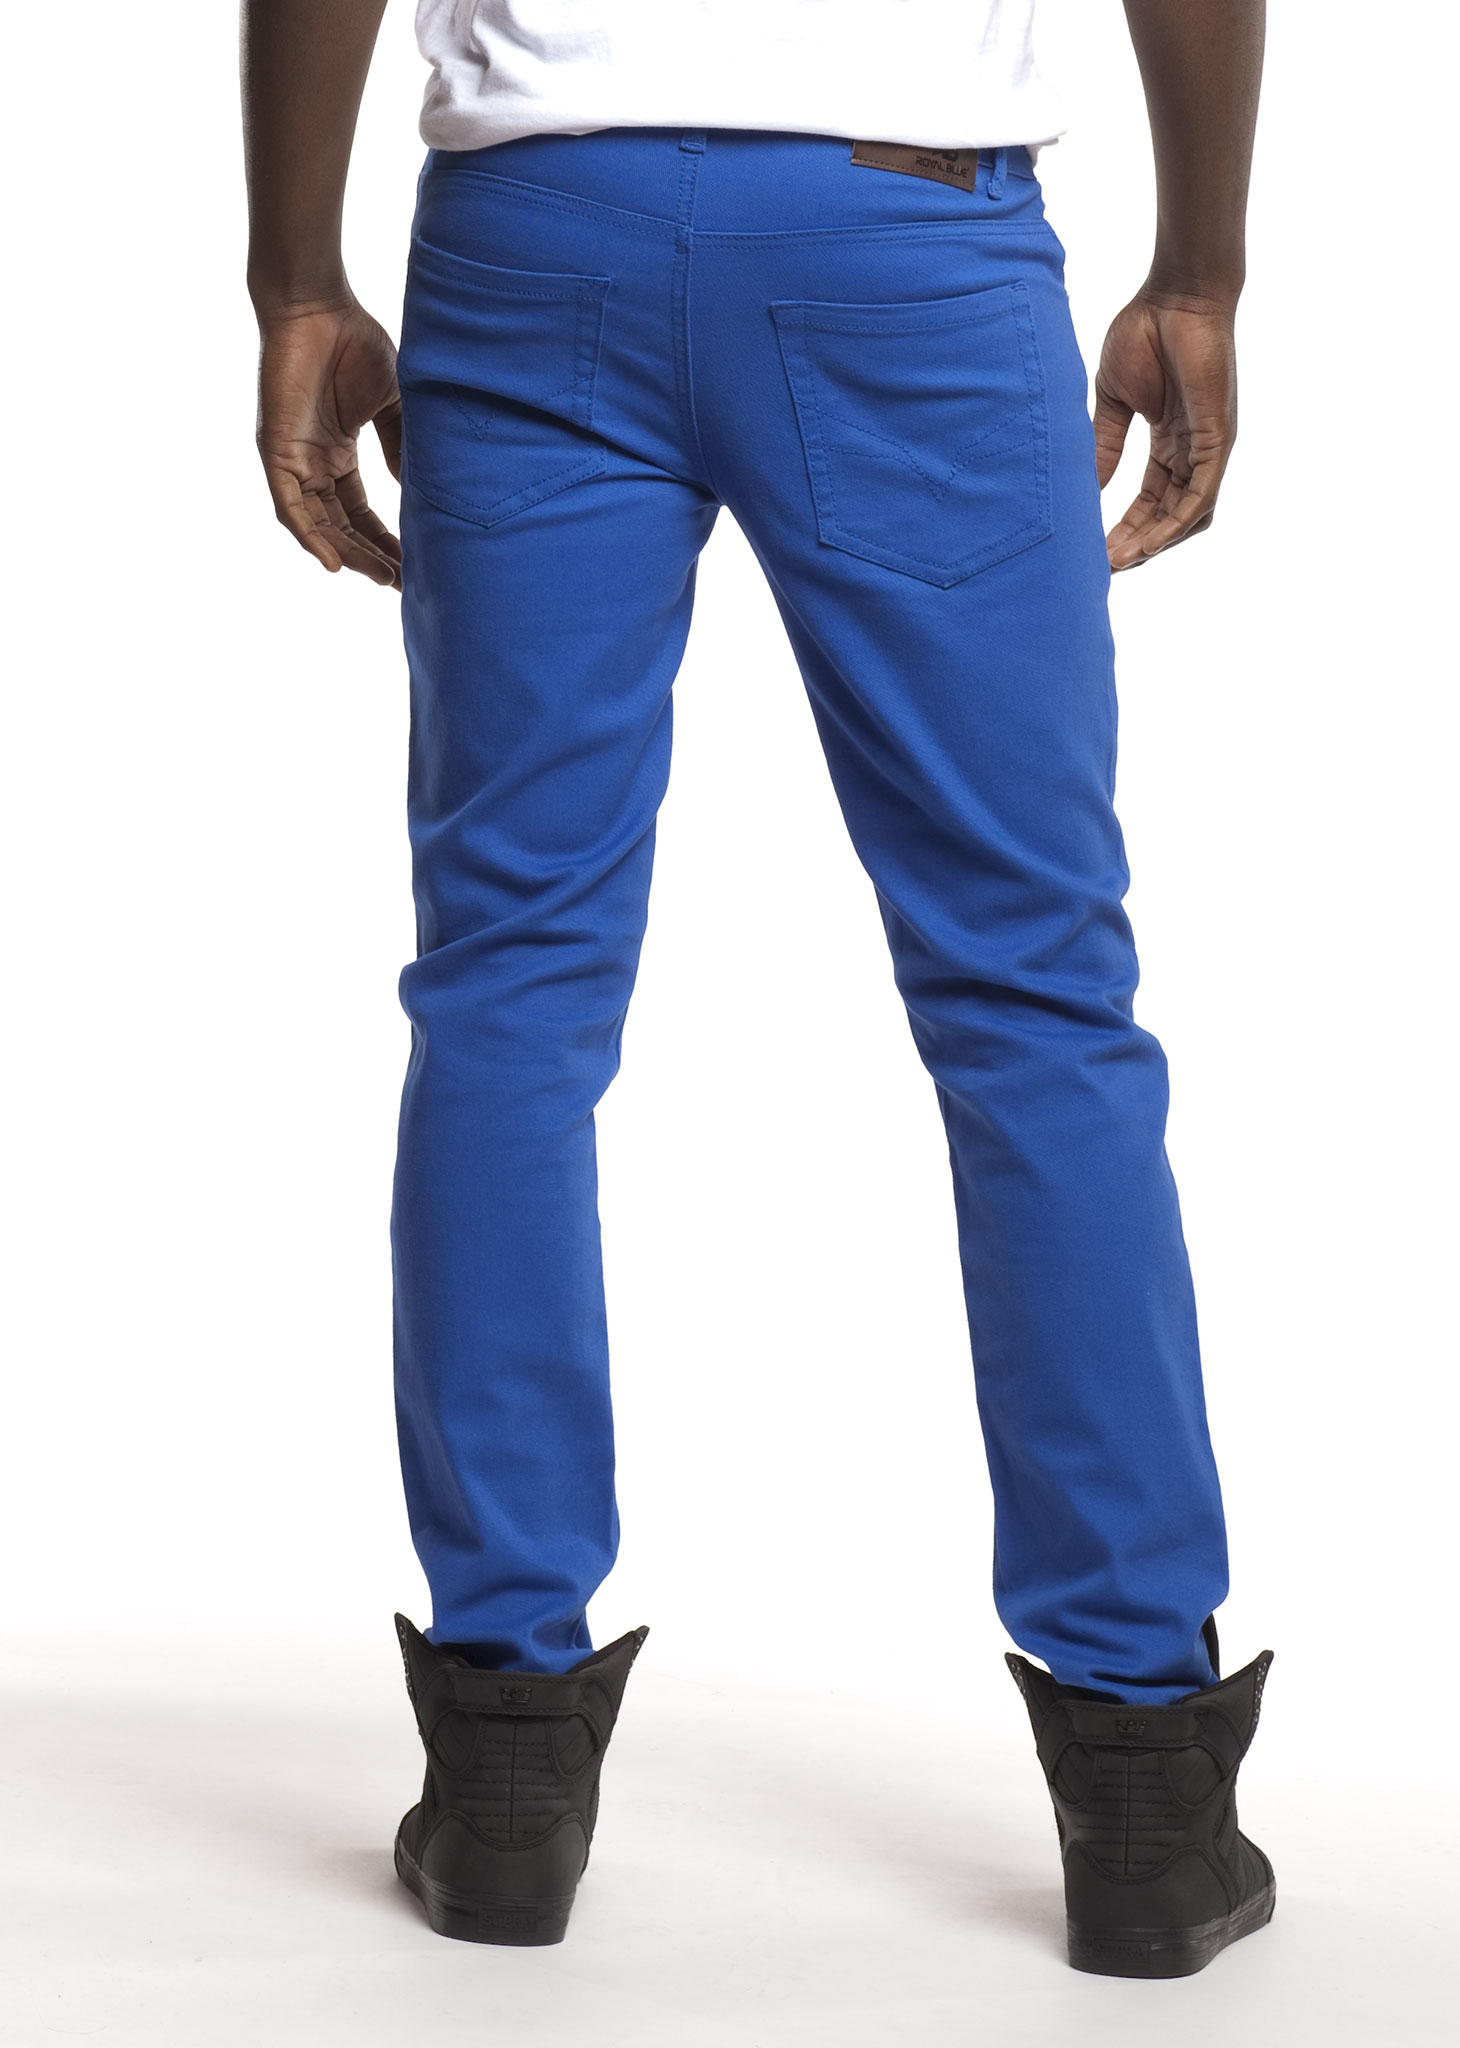 Royal Blue Men's Colored Skinny Stretch Twill Jean Pant